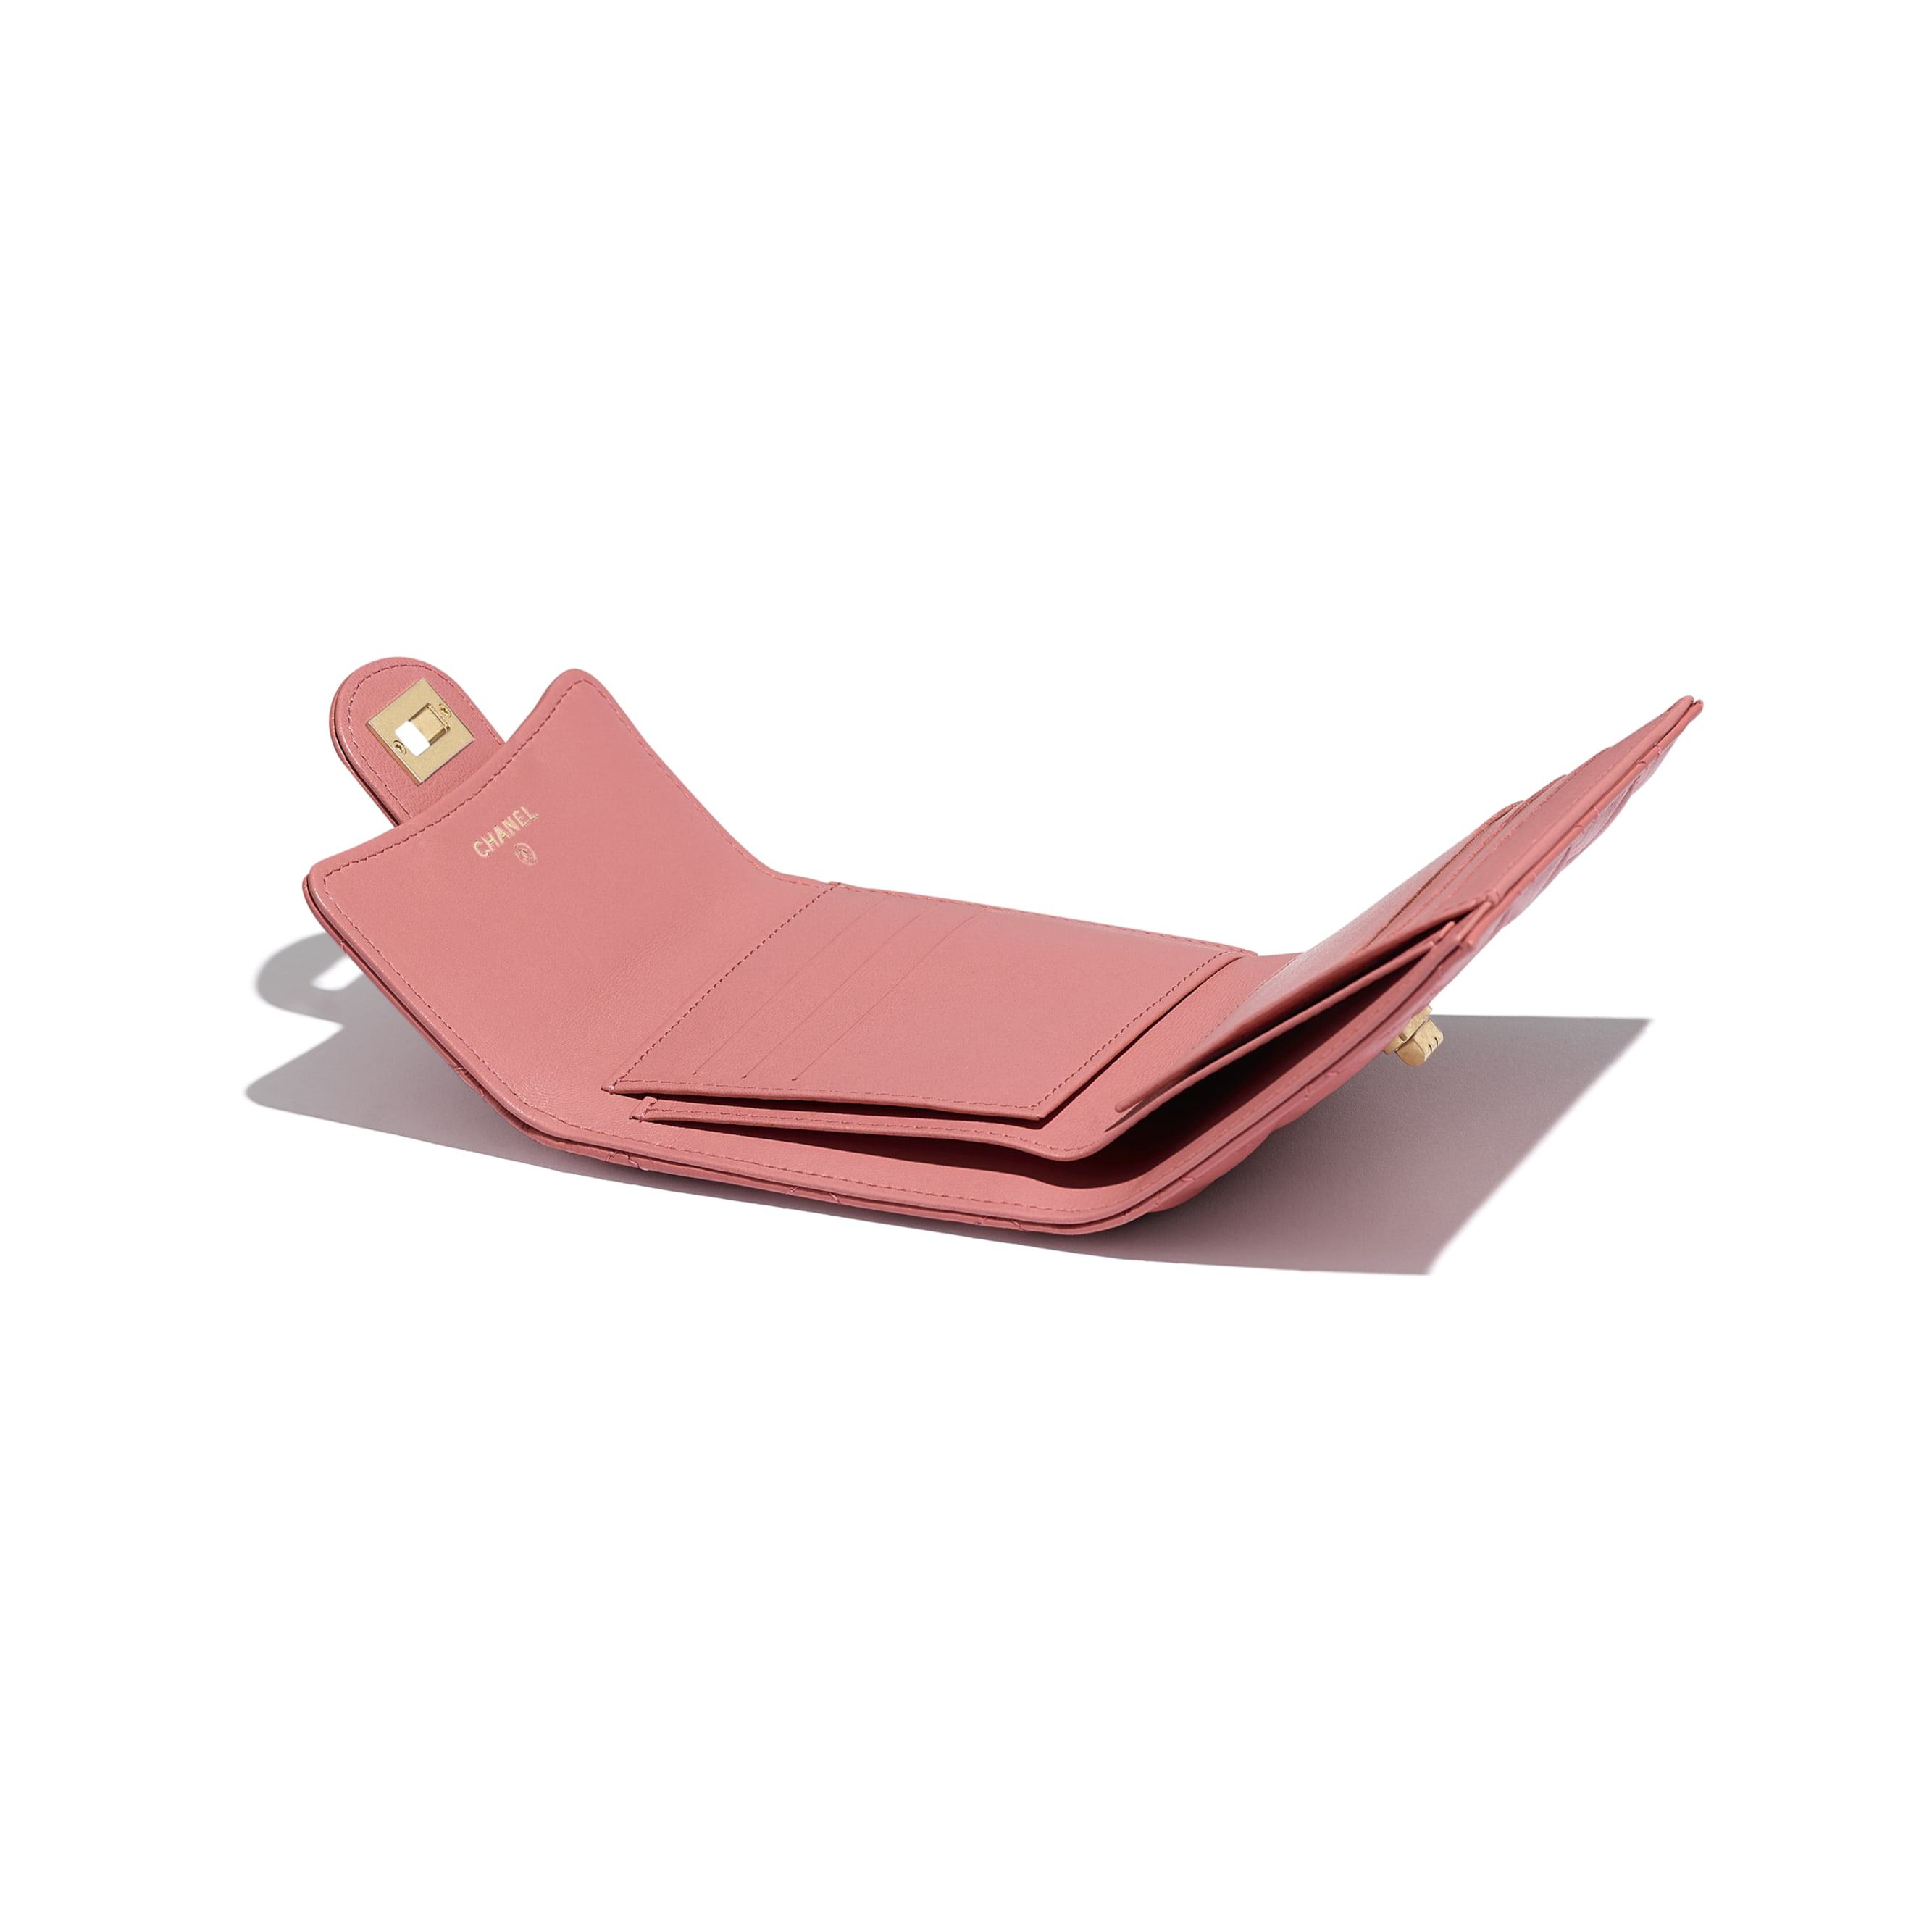 2.55 Small Flap Wallet - Pink - Aged Calfskin & Gold-Tone Metal - Extra view - see standard sized version